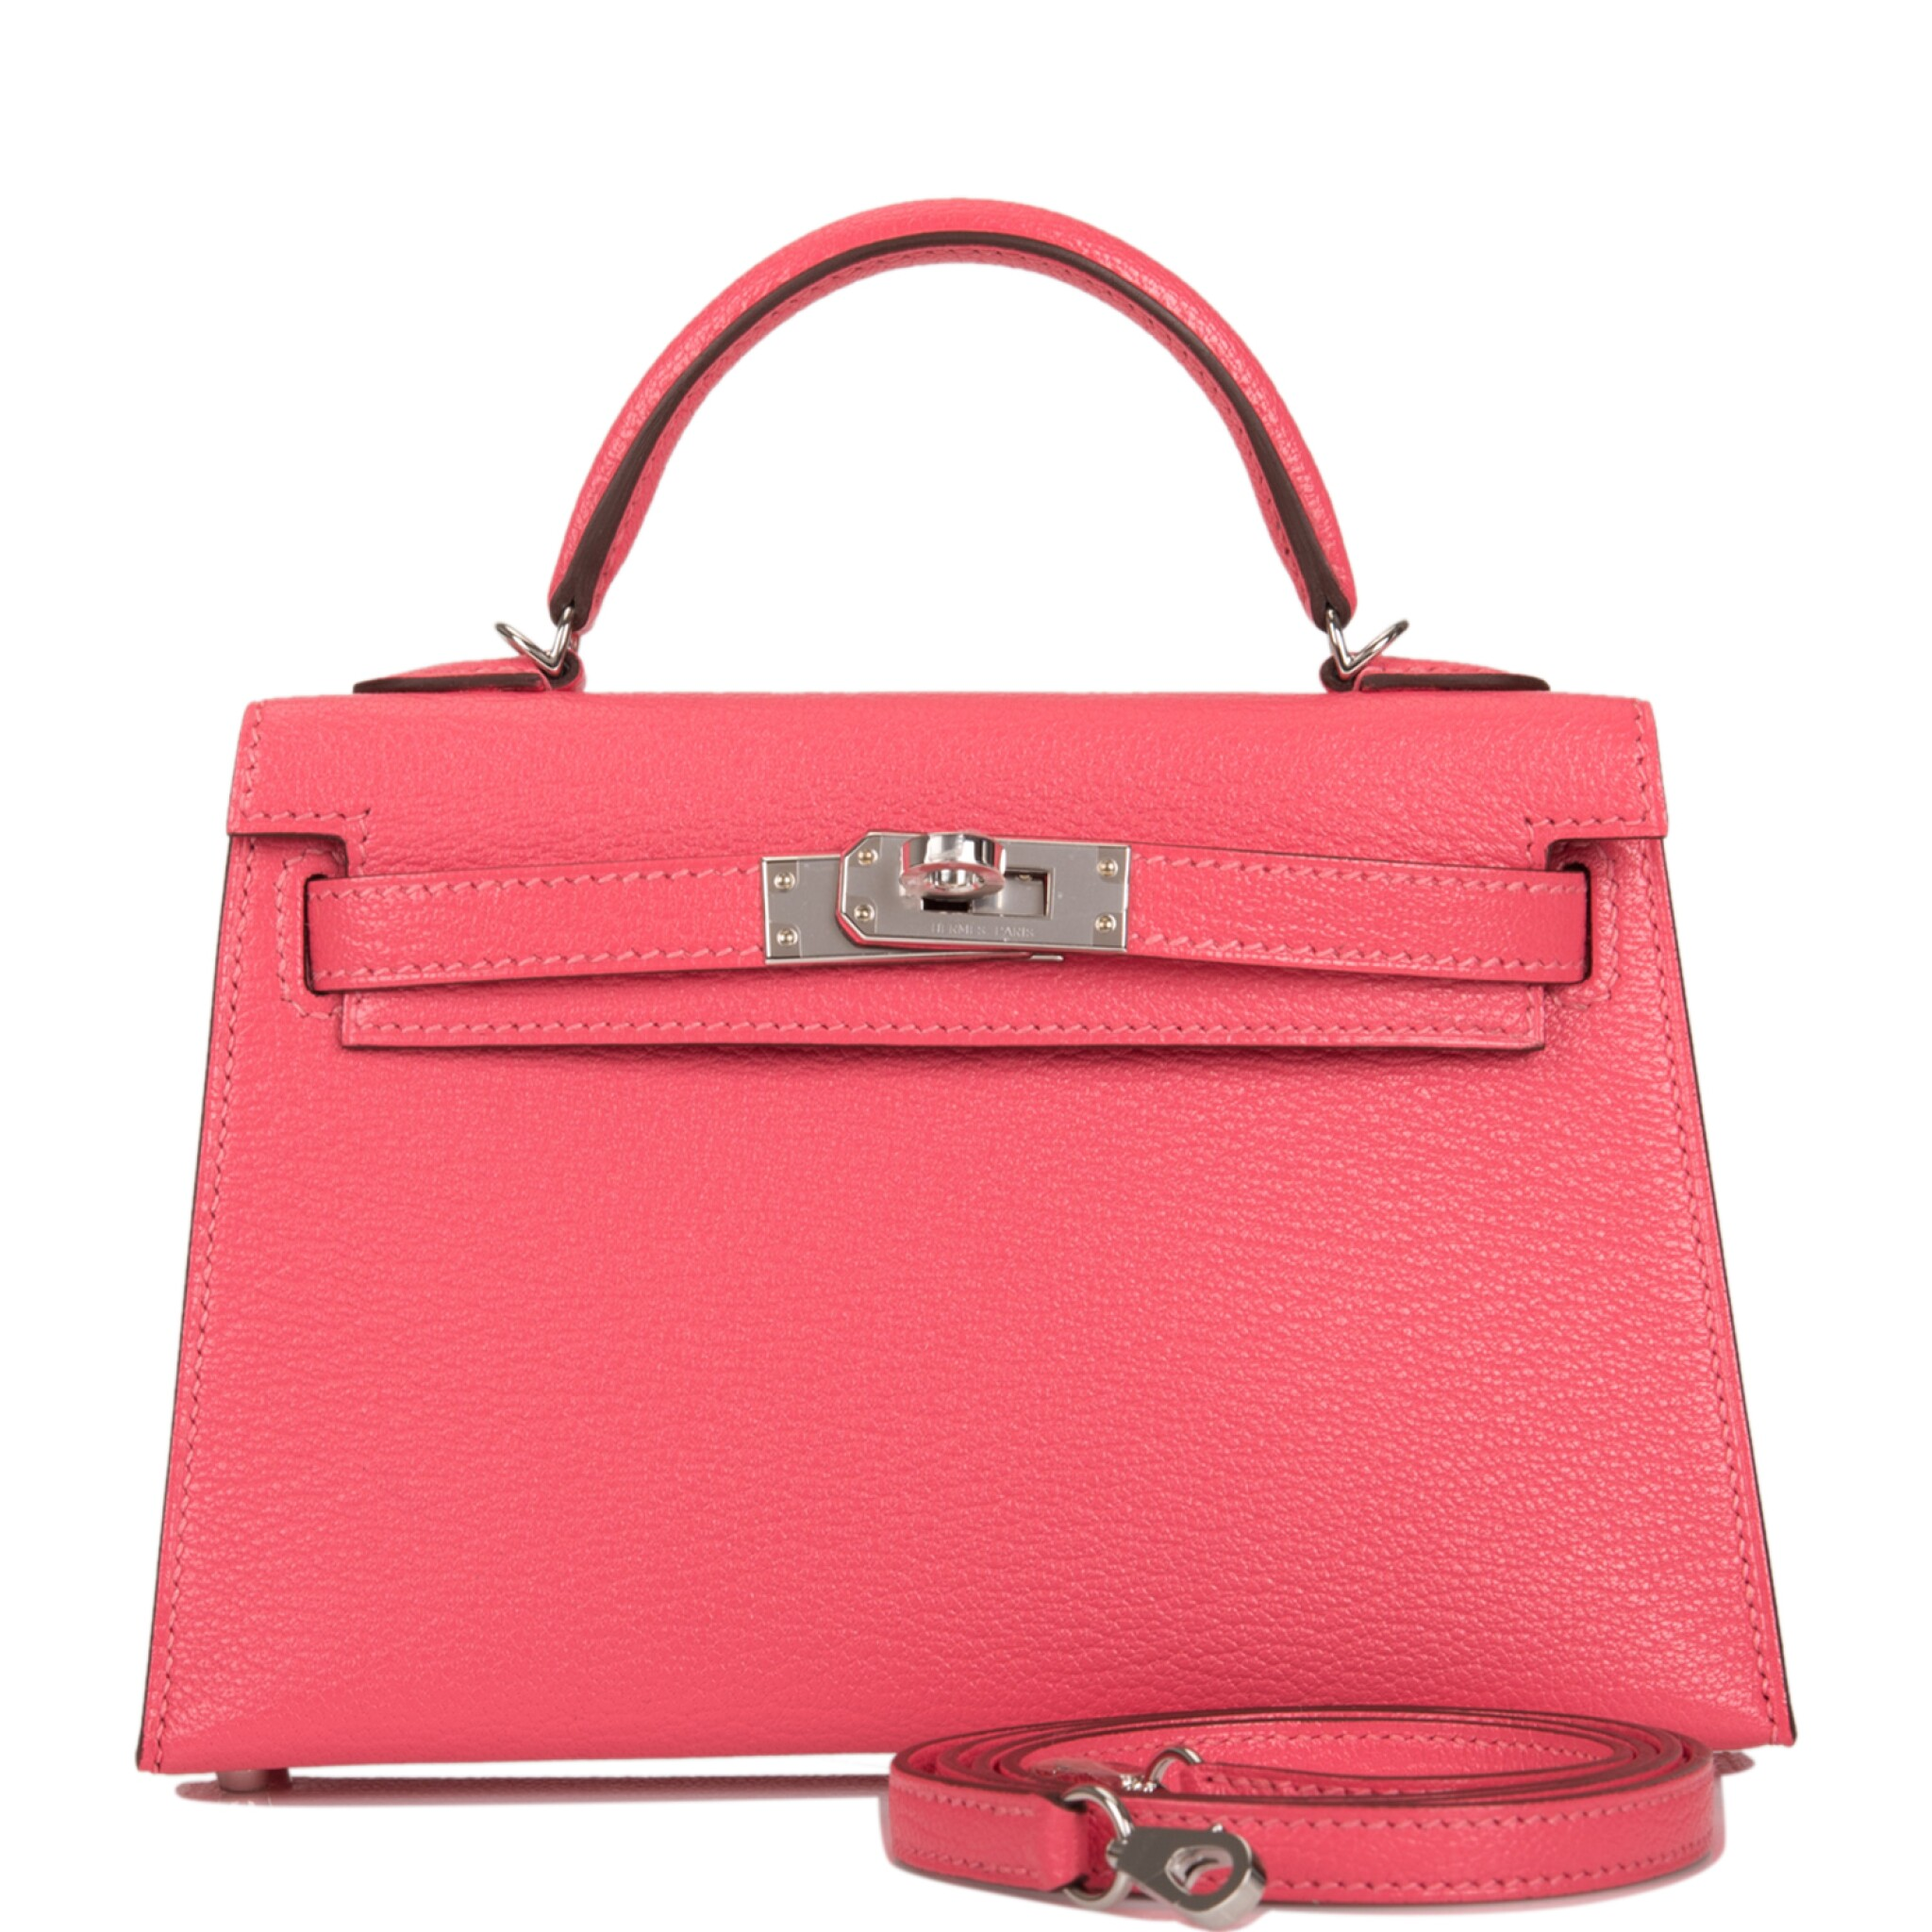 View full screen - View 1 of Lot 29. HERMÈS   ROSE LIPSTICK SELLIER KELLY 20CM OF CHEVRE LEATHER WITH PALLADIUM HARDWARE.